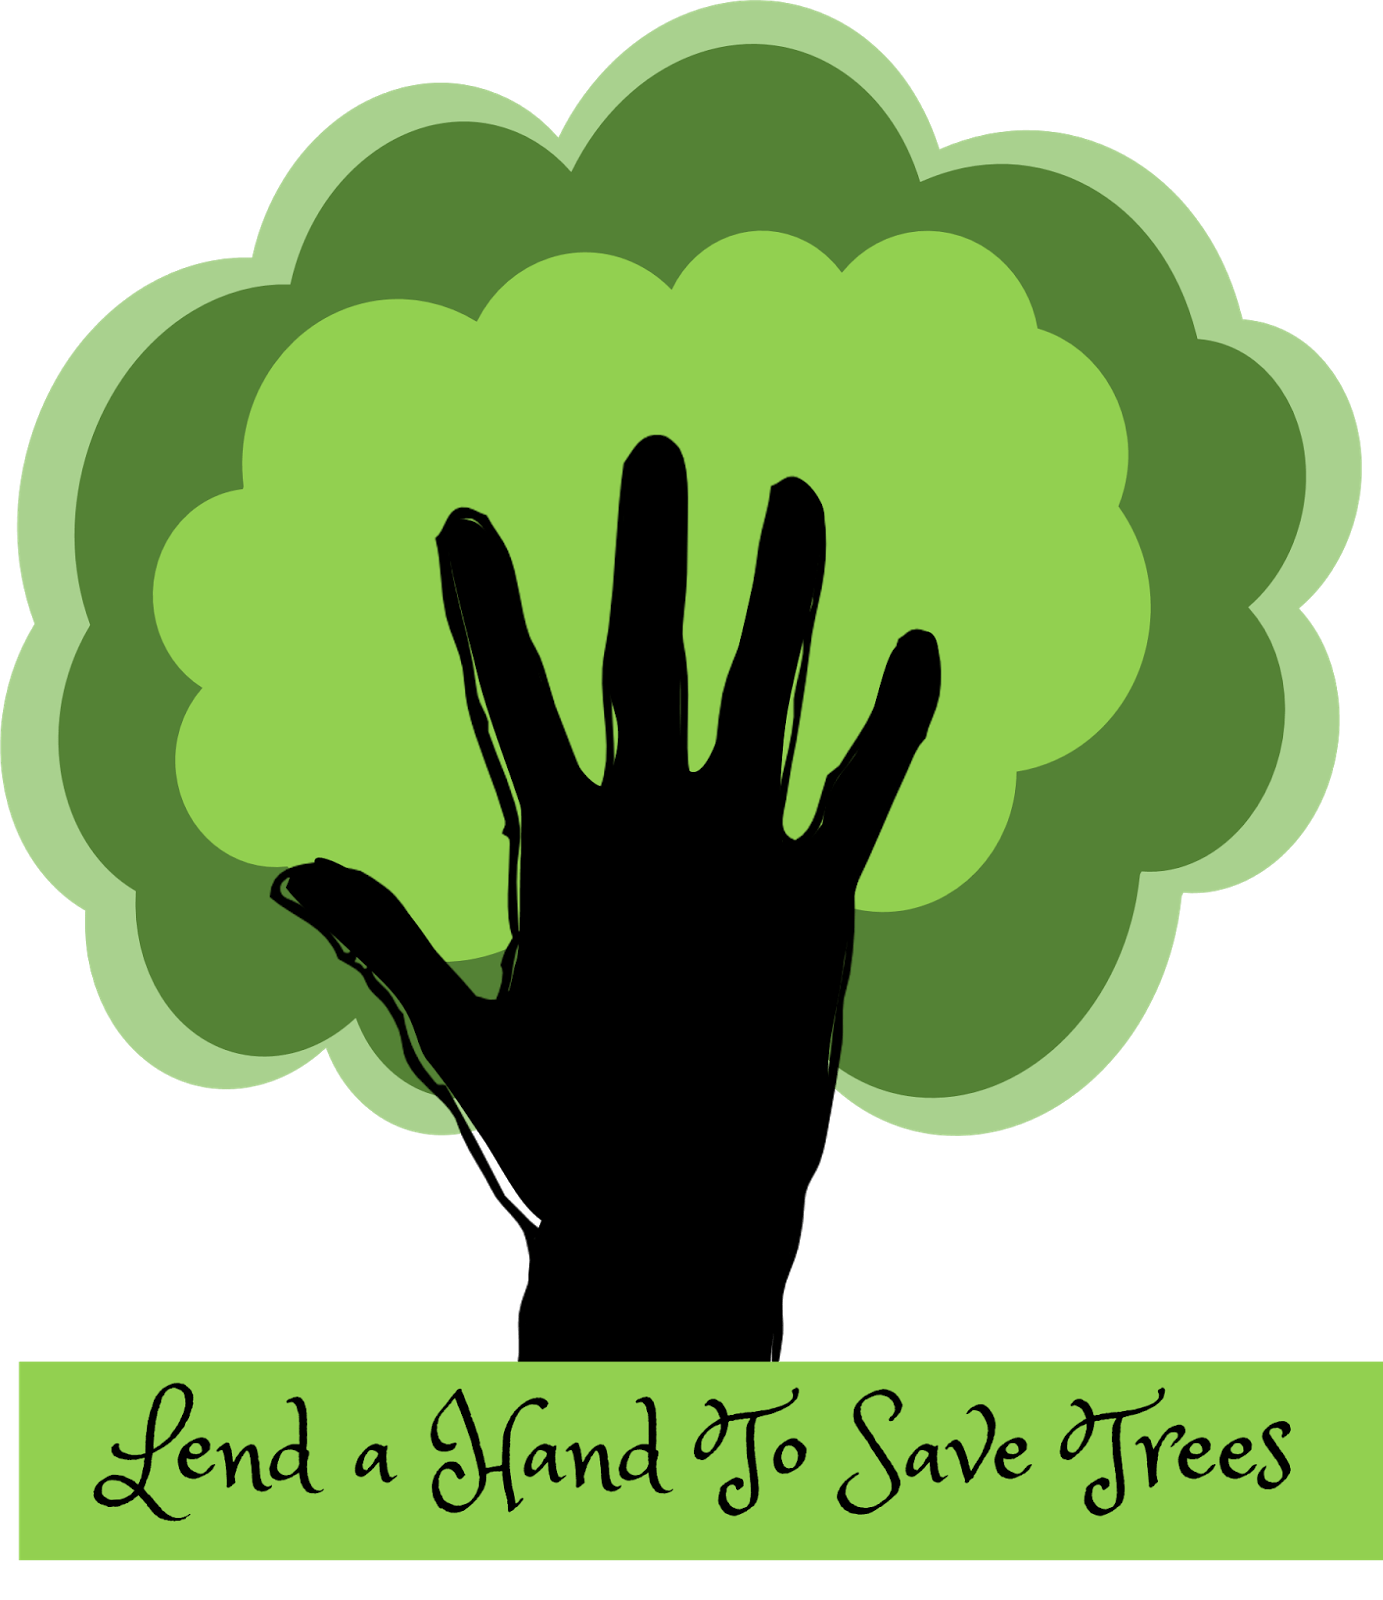 Save Trees Slogan Posters Free Cliparts Pinterest